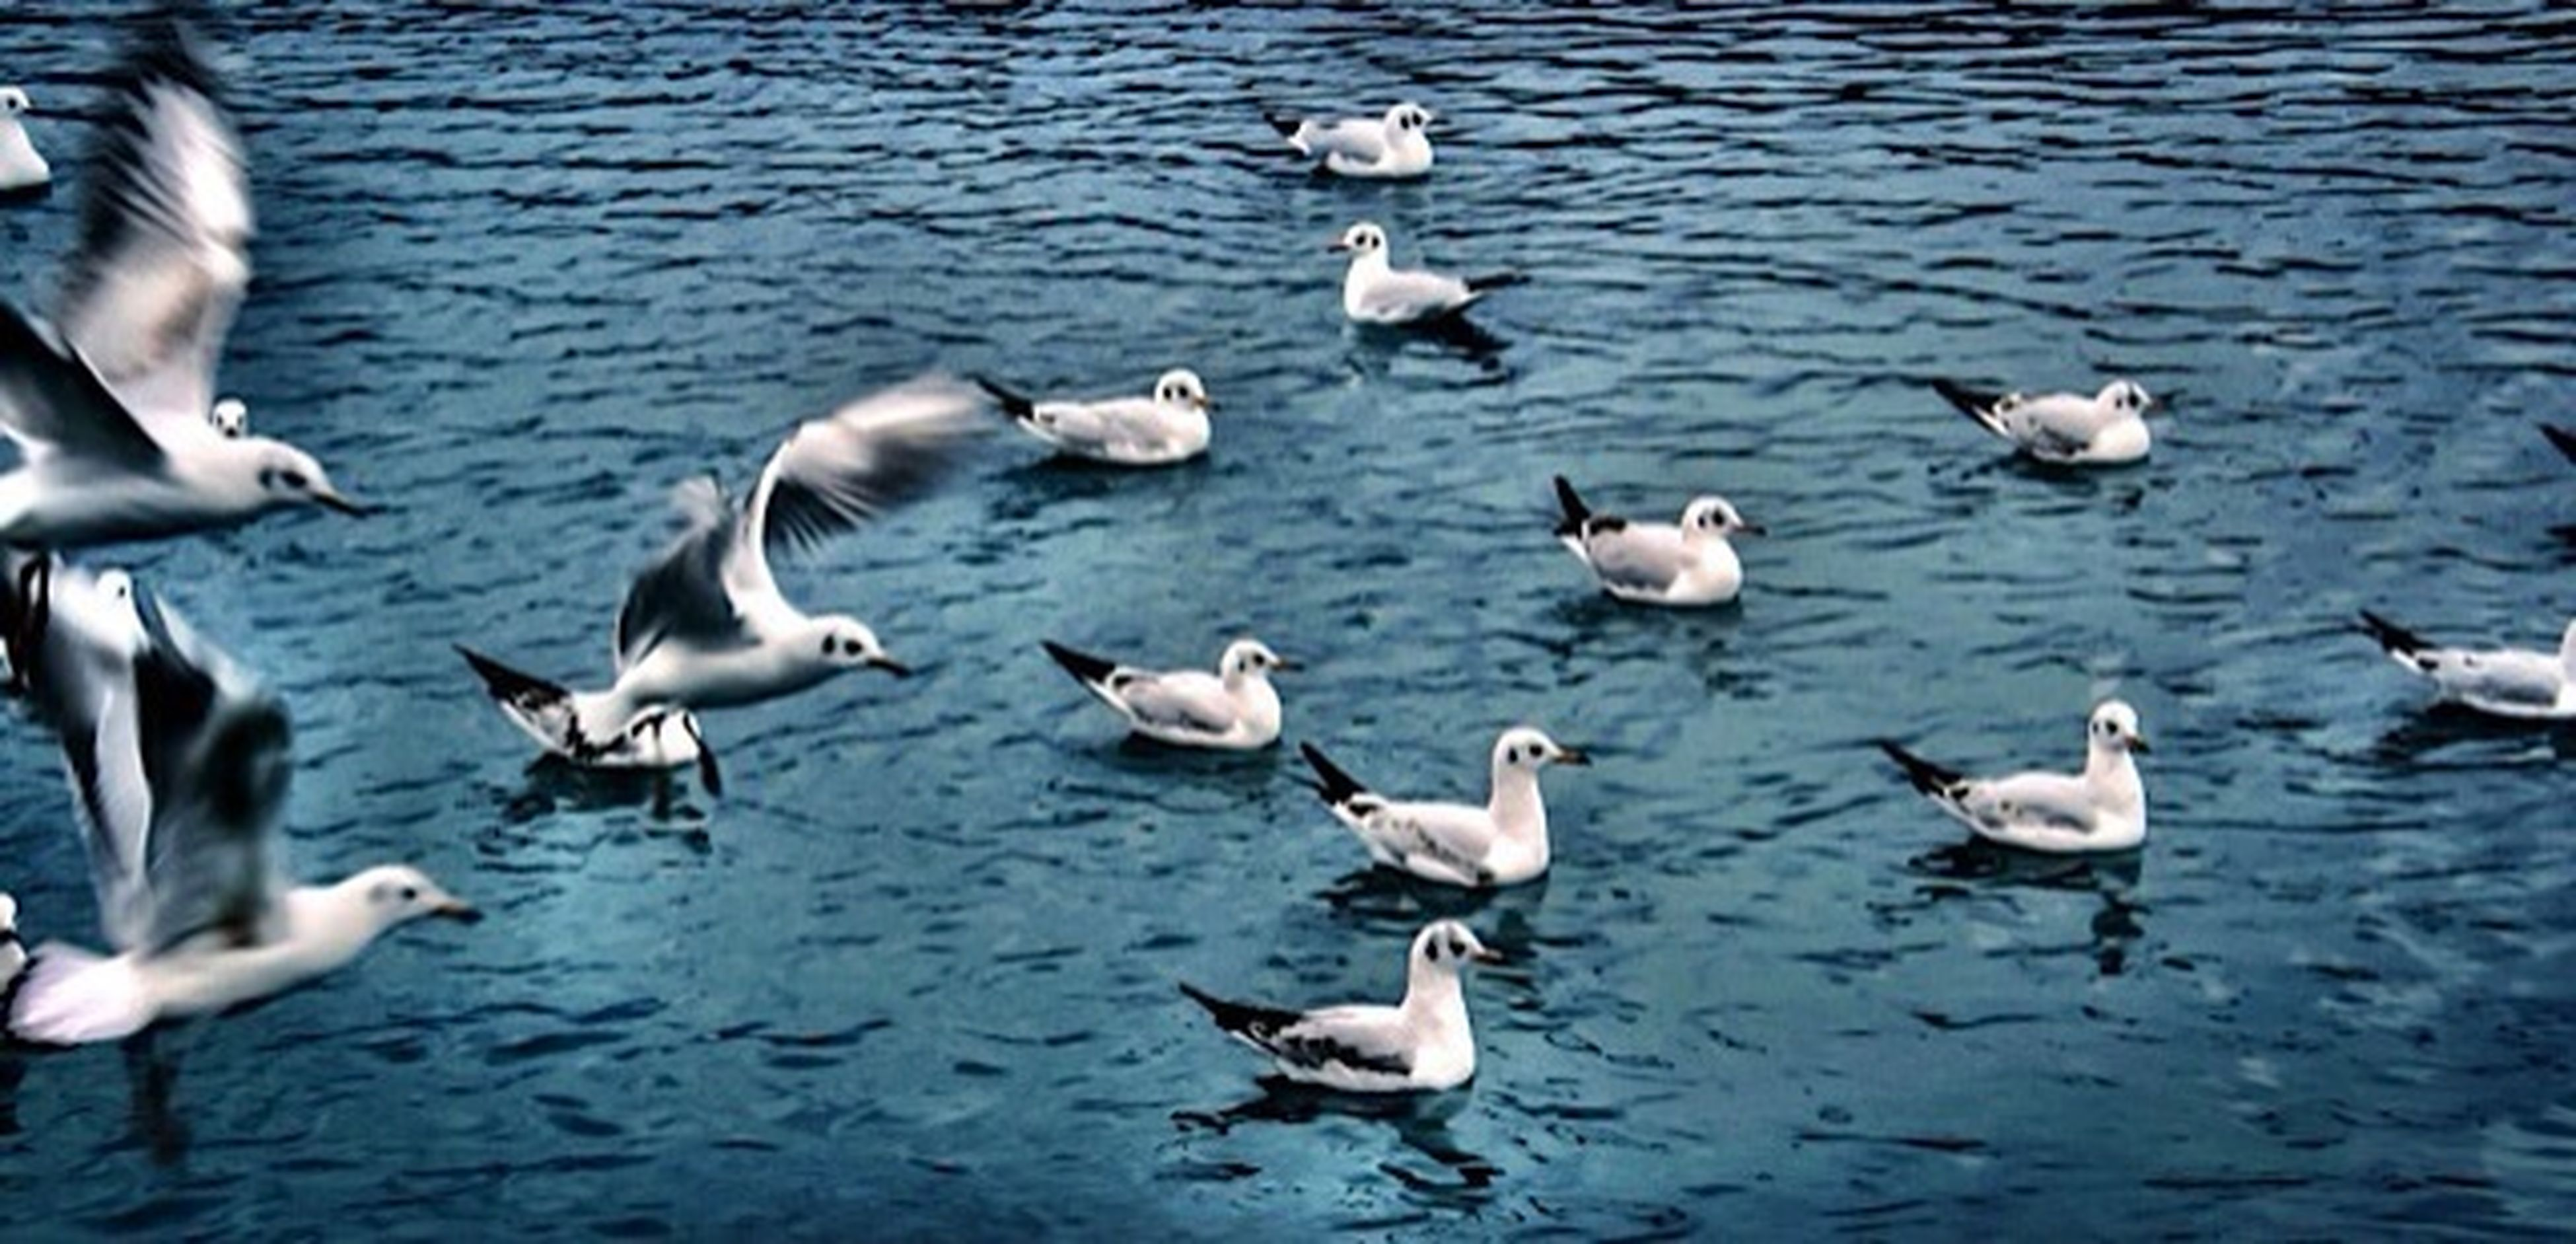 bird, animal themes, animals in the wild, water, wildlife, flock of birds, togetherness, medium group of animals, duck, lake, seagull, nature, waterfront, rippled, goose, swimming, sea, reflection, water bird